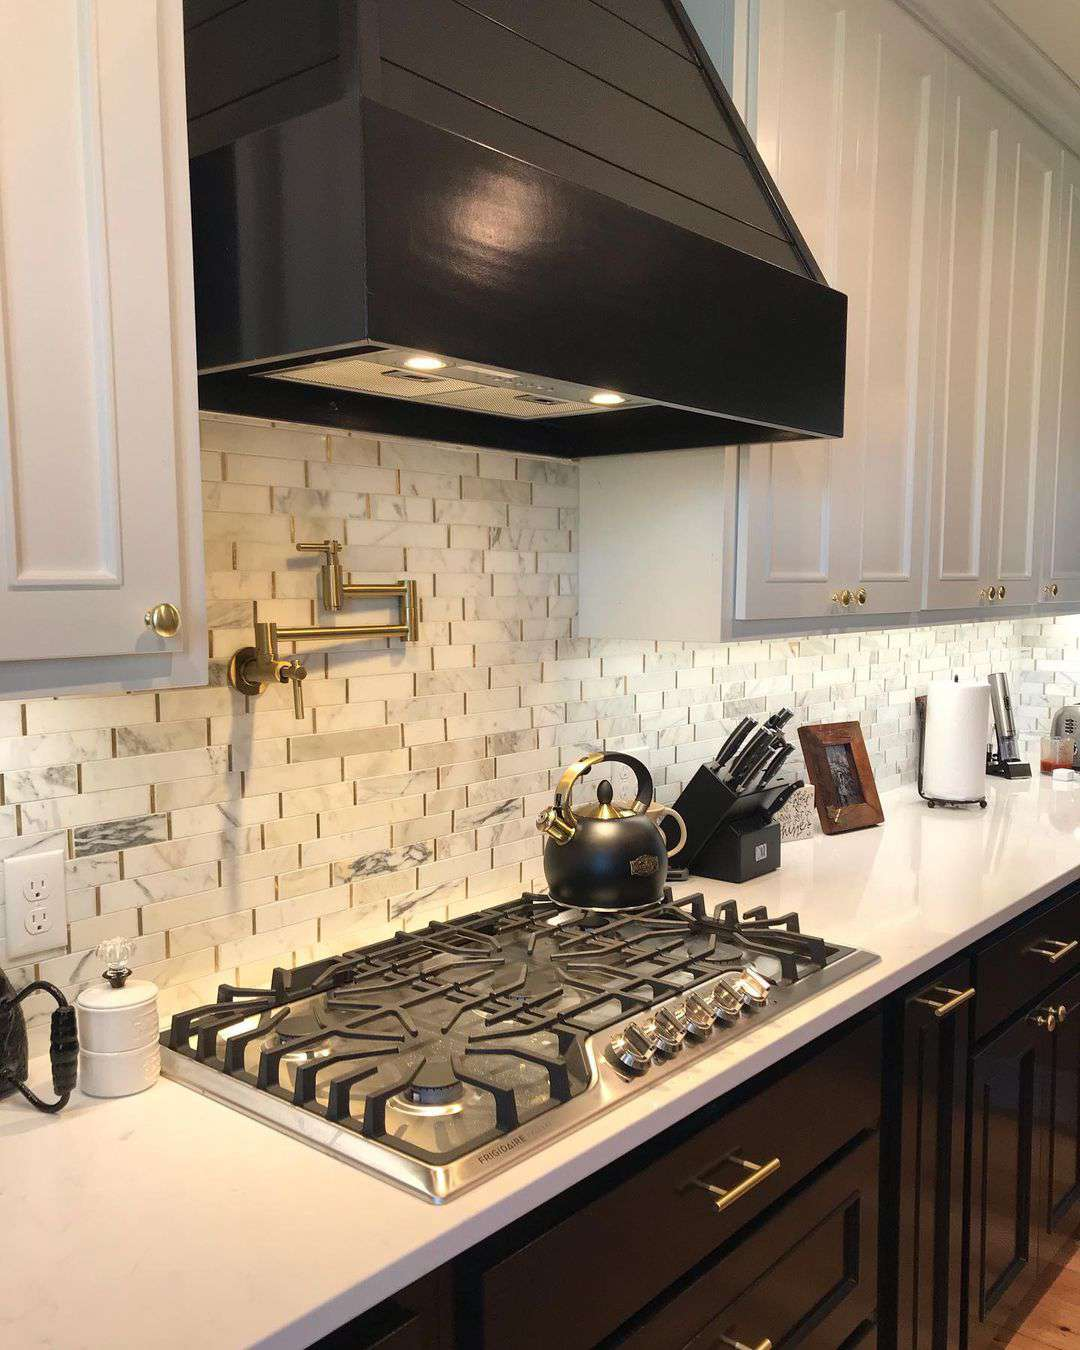 Kitchen with layered tiles